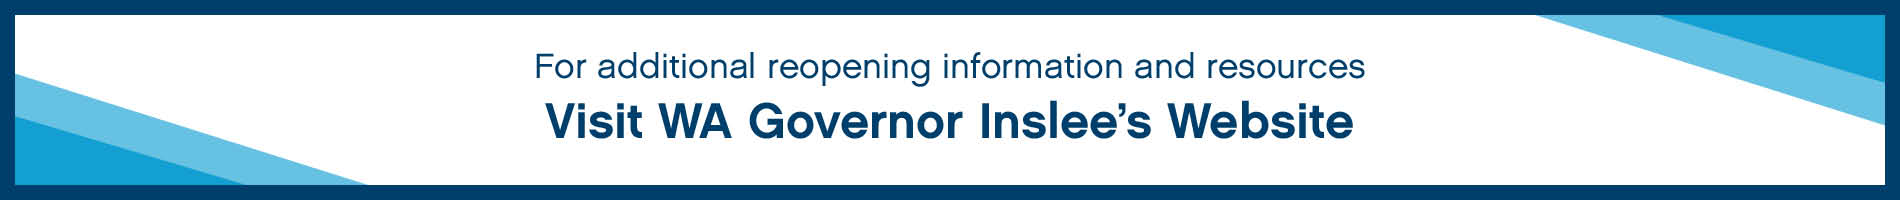 Visit WA Governor Inslee's Website